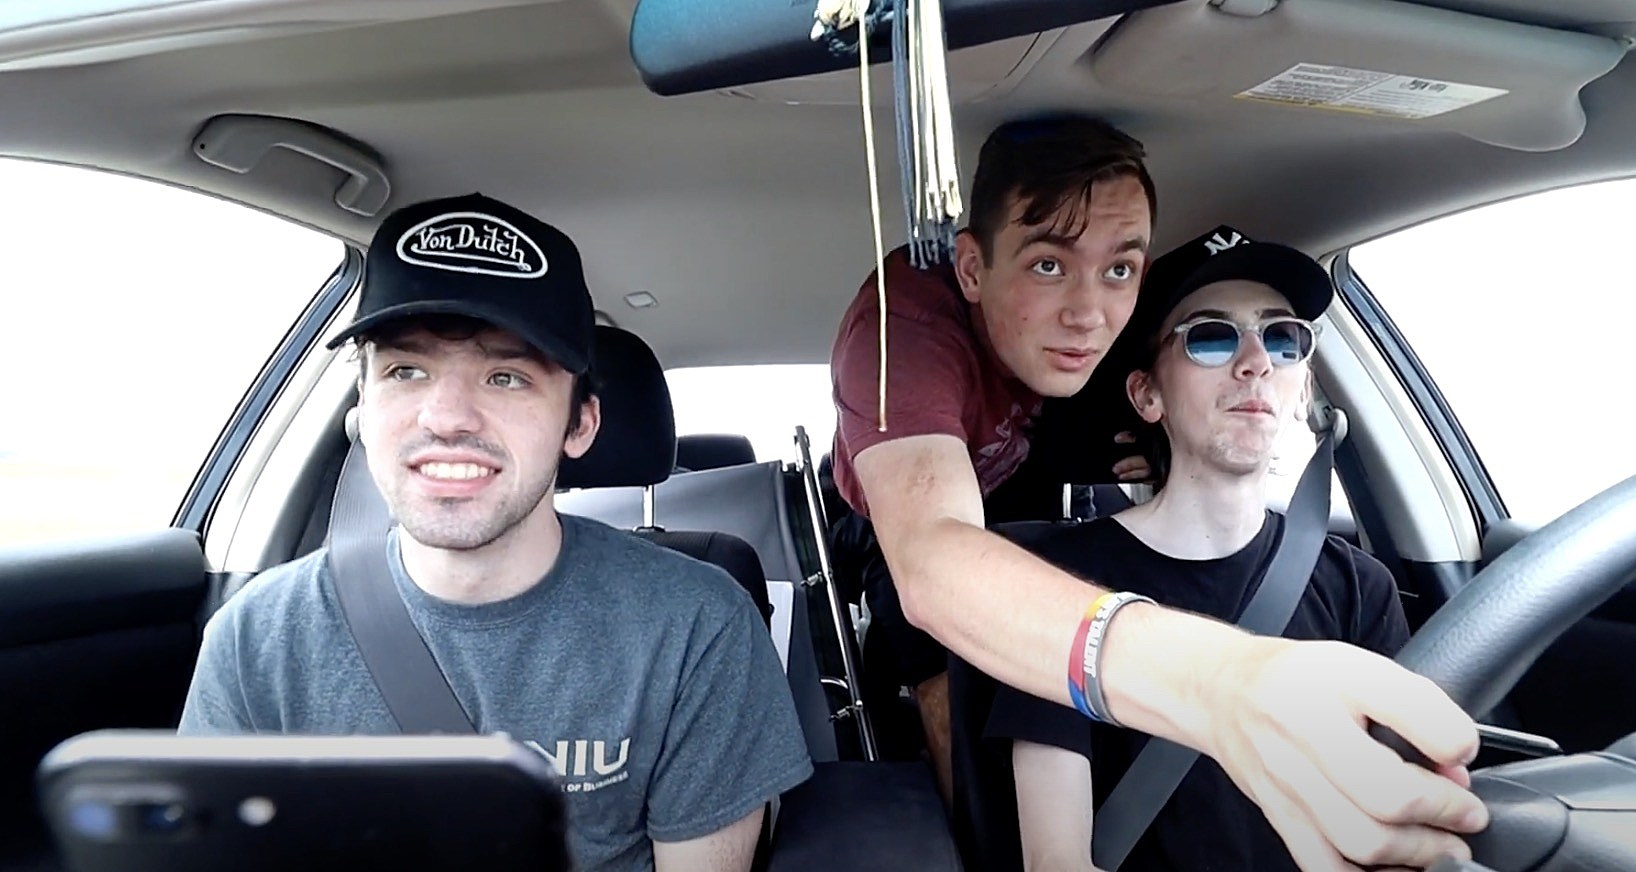 Only putting this video on for entertainment!!!lyrics,big wheels keep on turning carry me home to see m. Illinois Friends Play Sweet Home Alabama For 7 Hrs On Road Trip